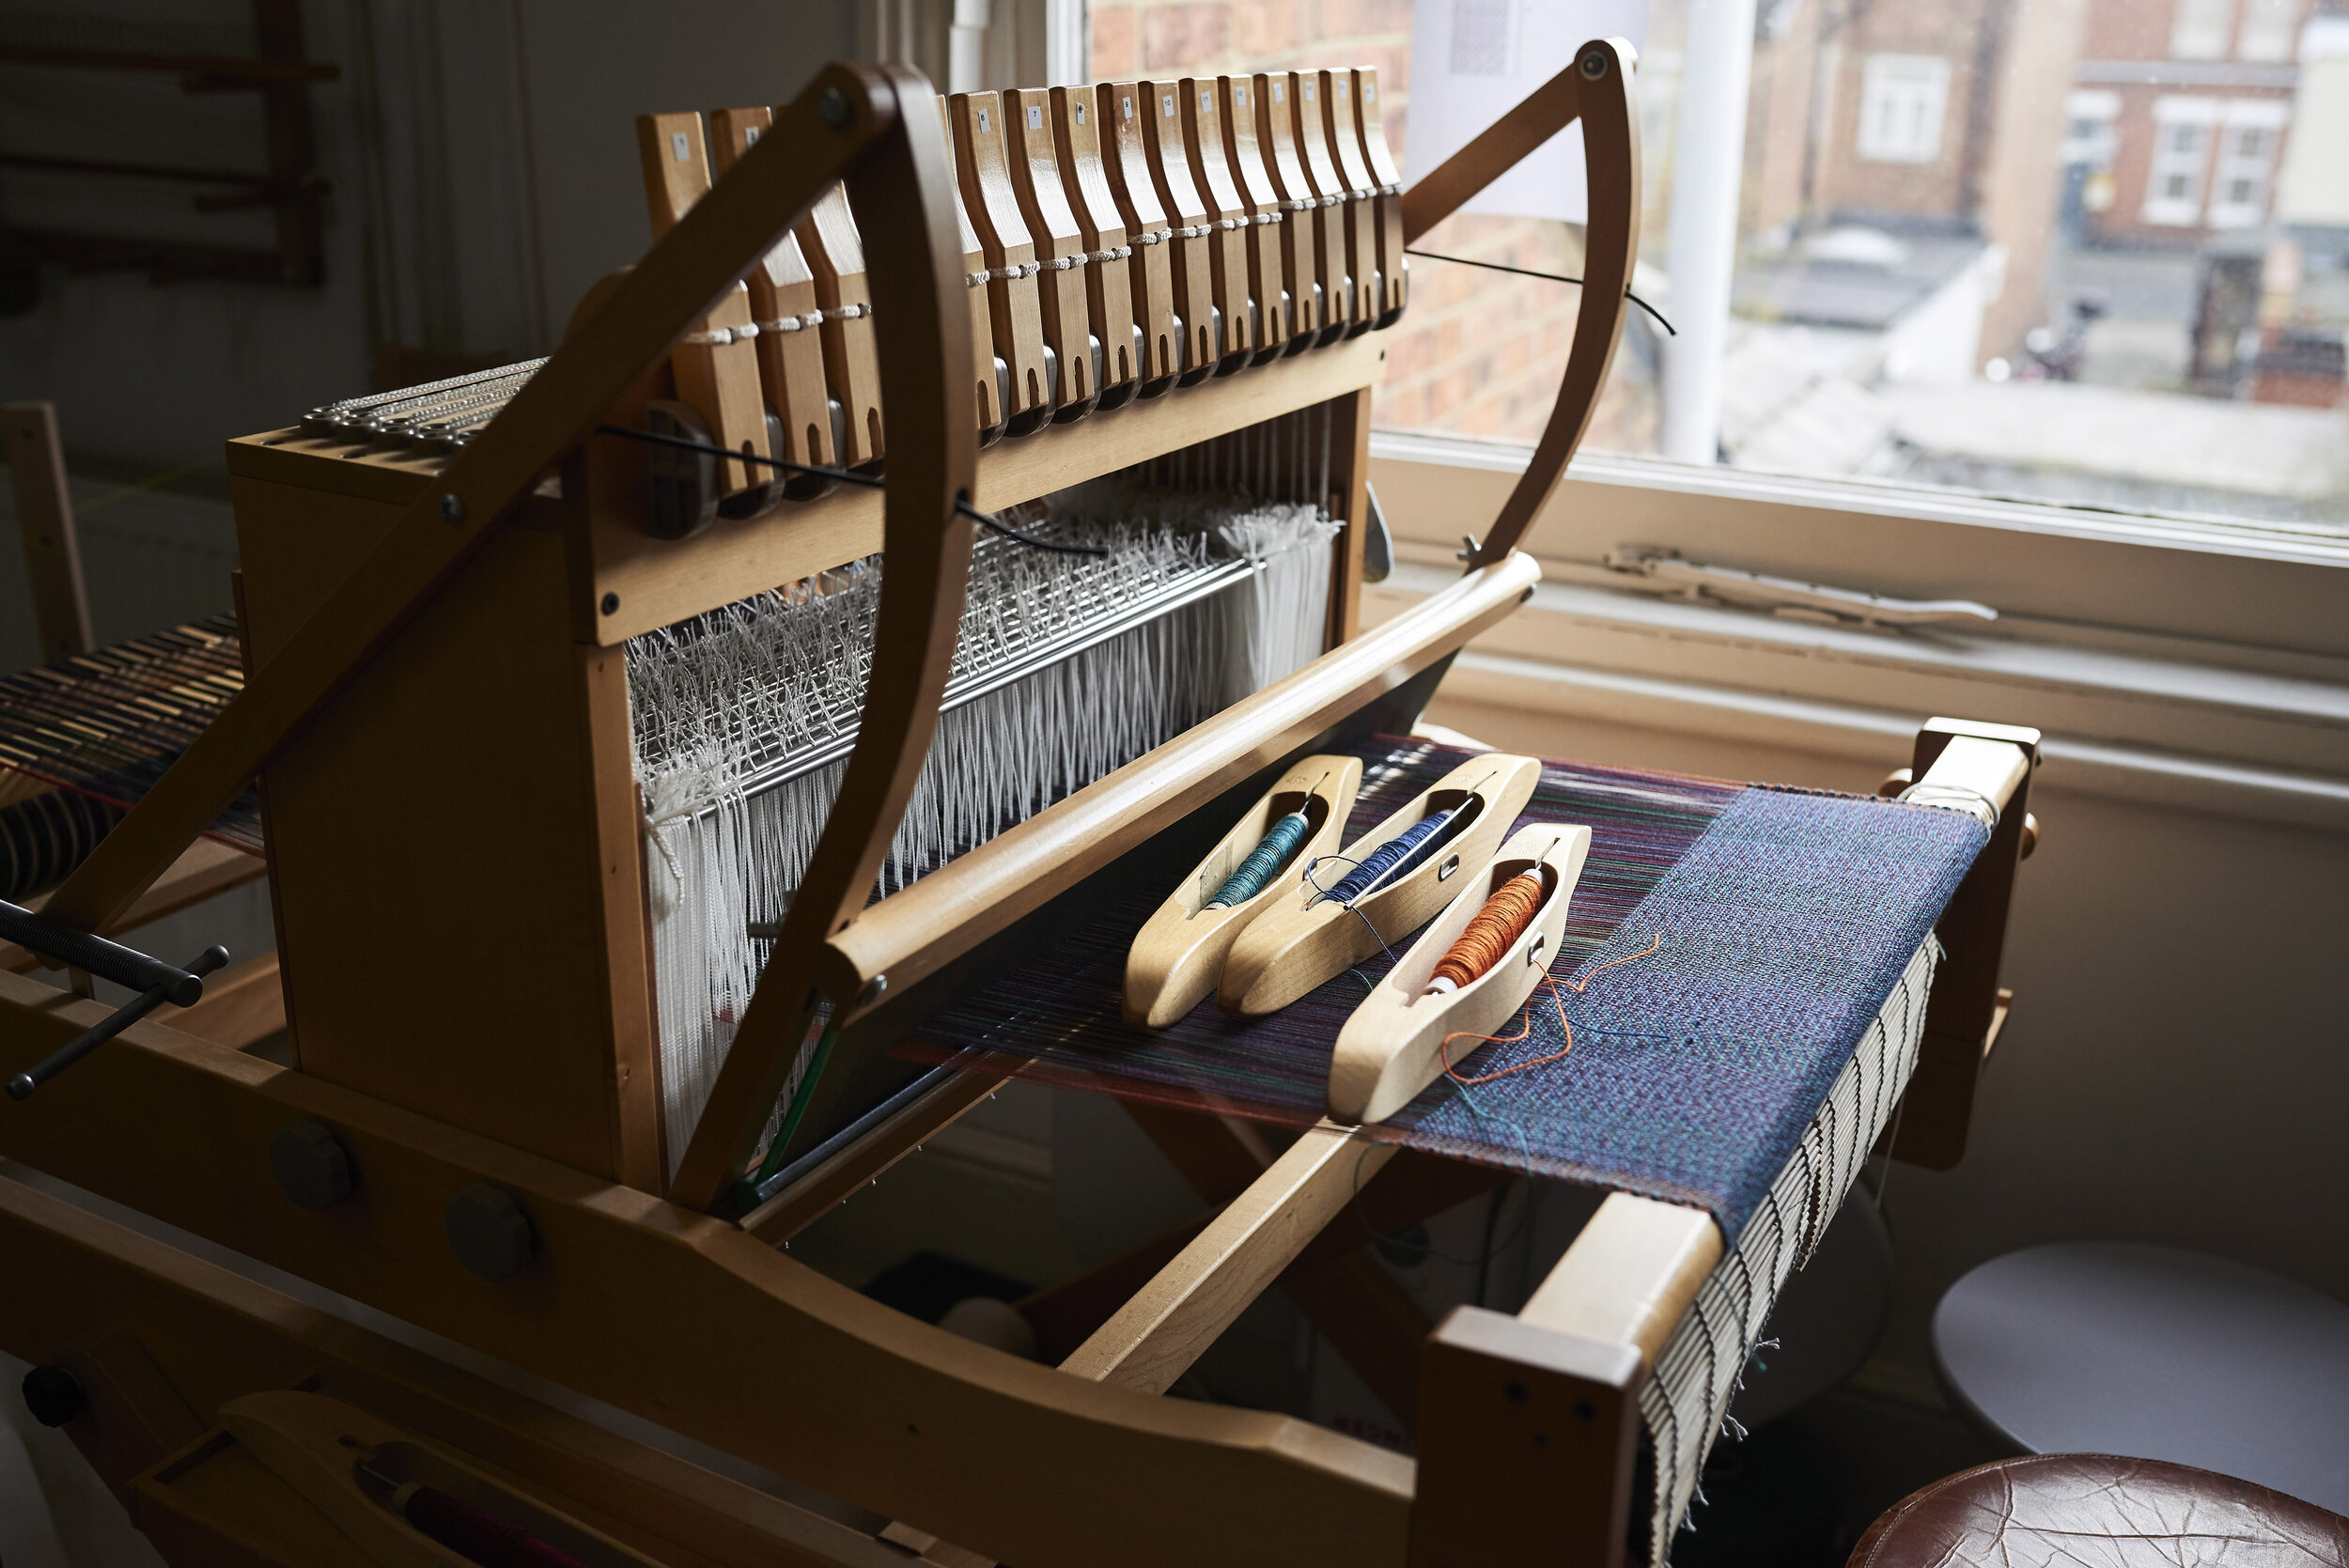 By Cecil hand loom in her North London studio